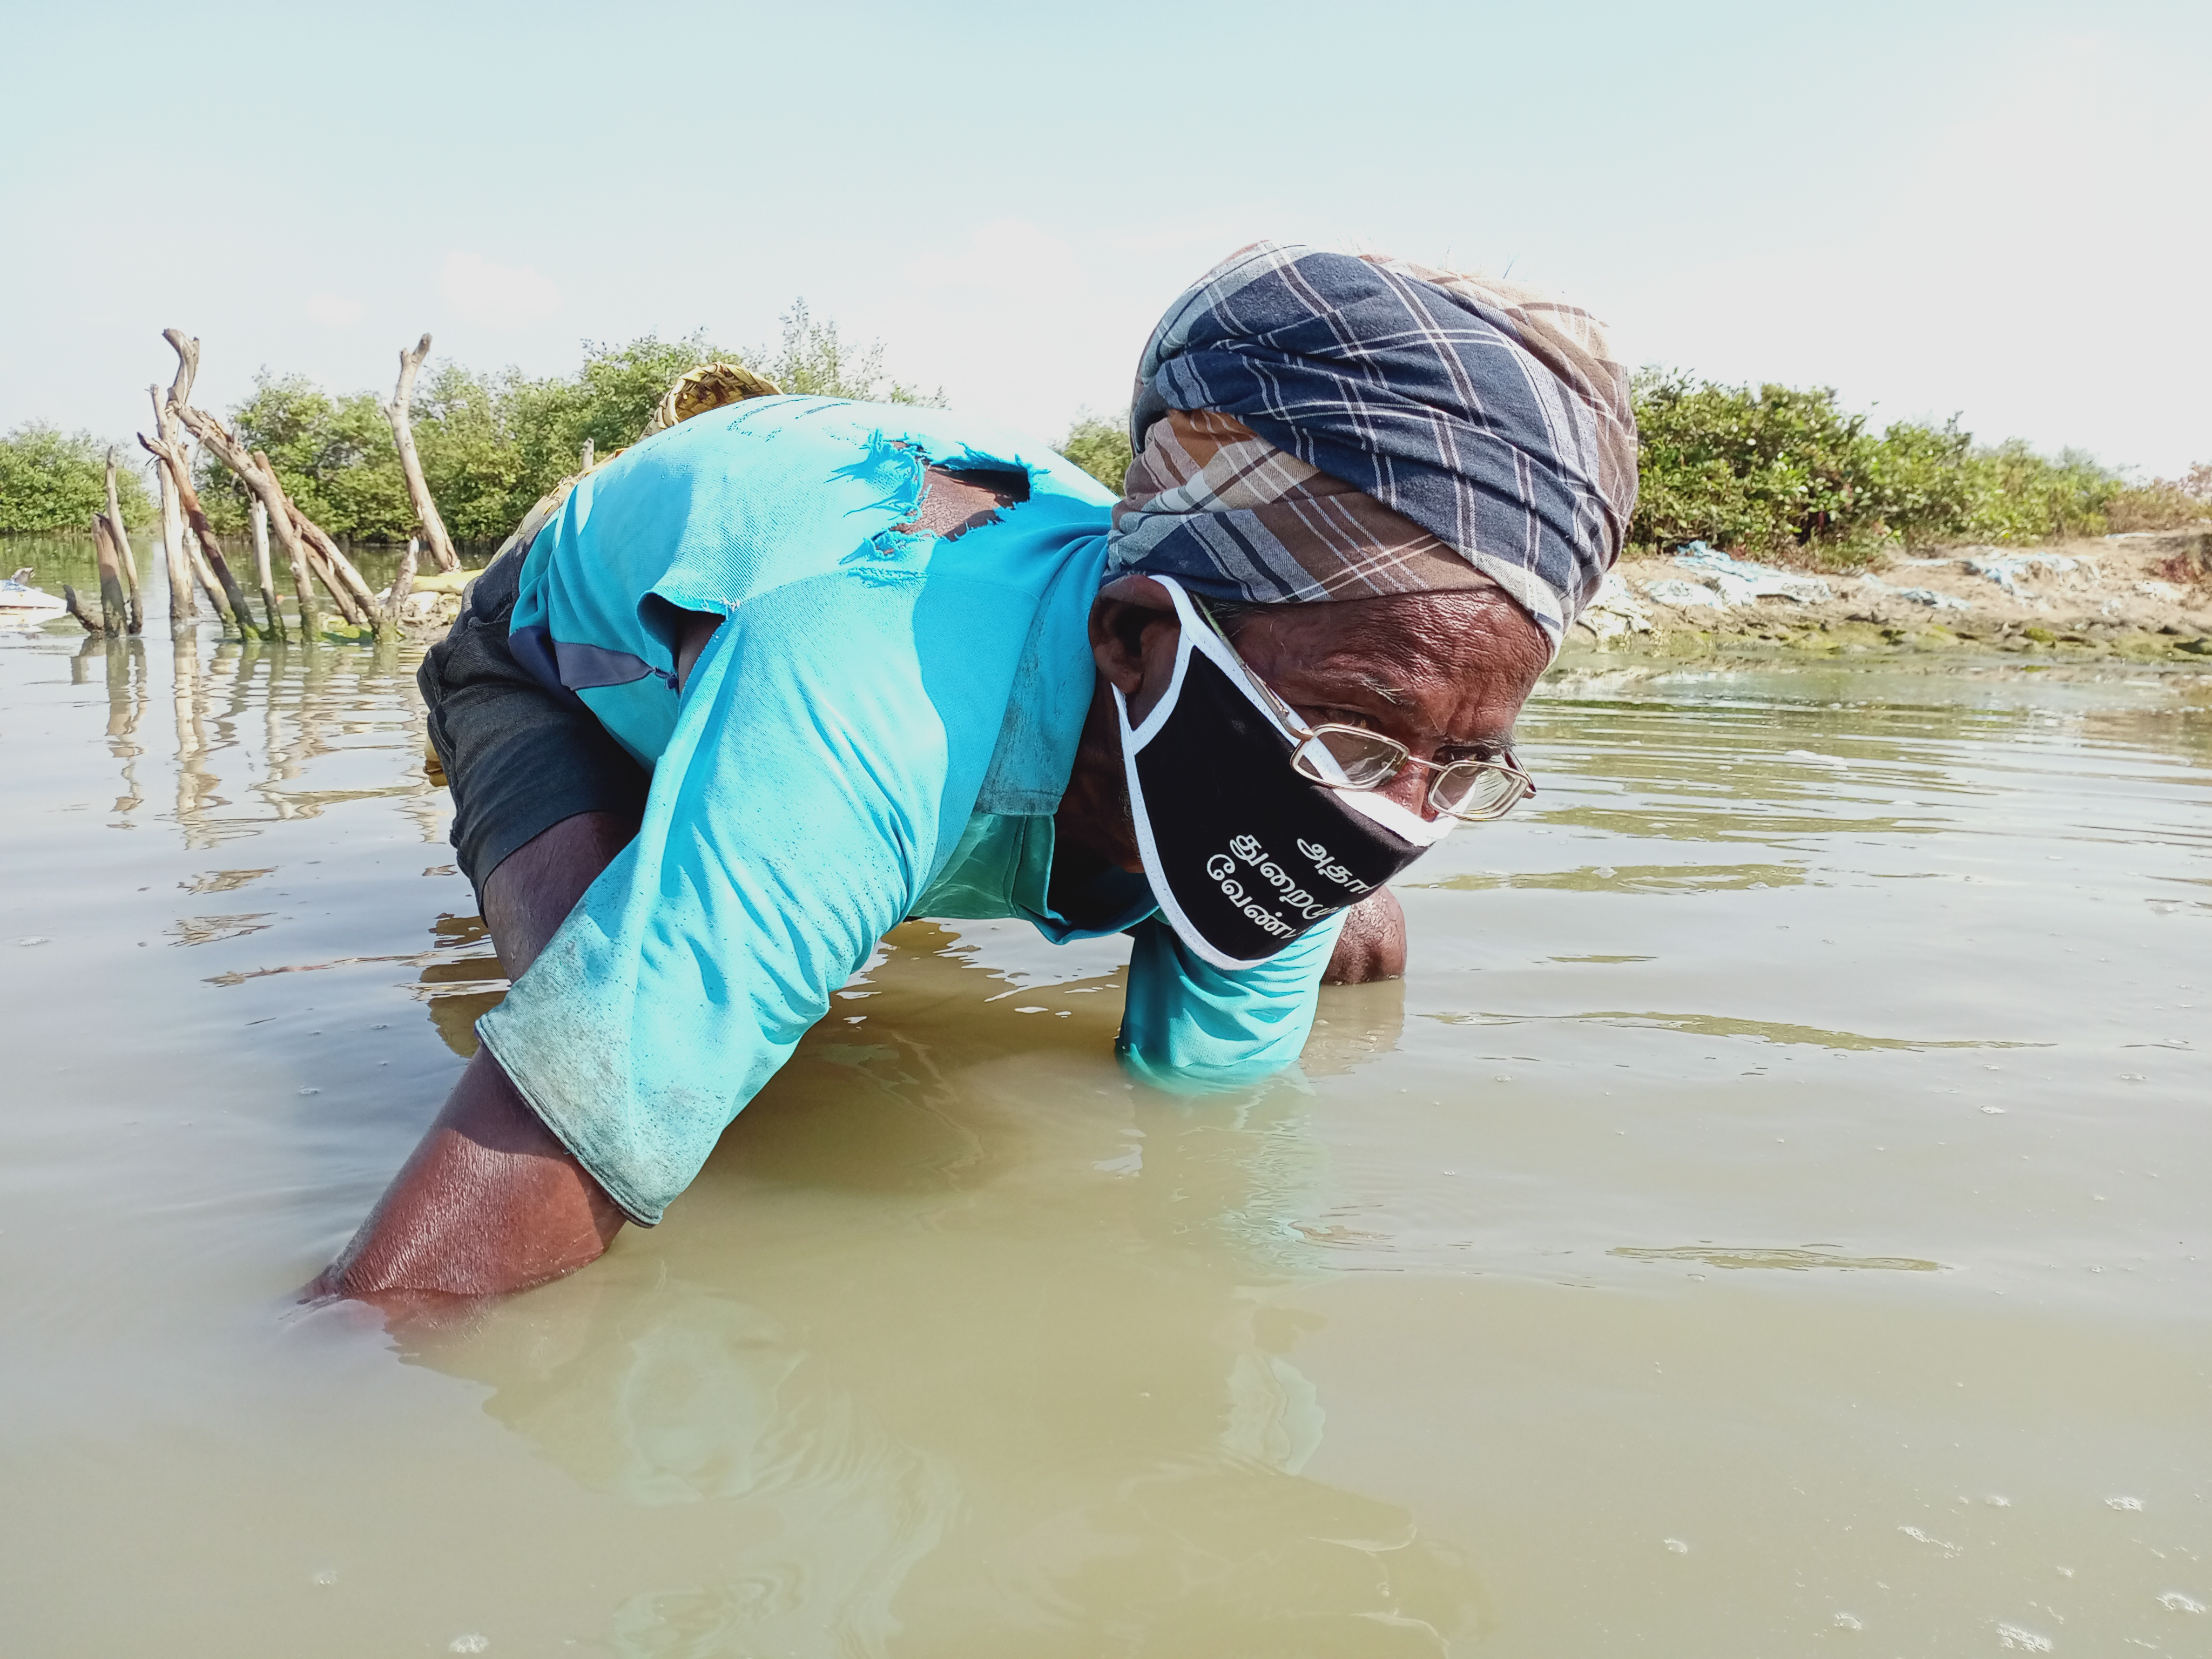 10. The lagoon and backwaters have something for everyone. An elderly fisher from Sengenimedu crouches in the water and uses his bare hands to pick prawns. A day's work will fetch him anywhere from Rs. 250 to Rs. 1000 (AUD $5-10). It is estimated that handpicking is the mainstay for about 2000 people, mostly women from historically marginalised communities like dalits and the Irular tribe.